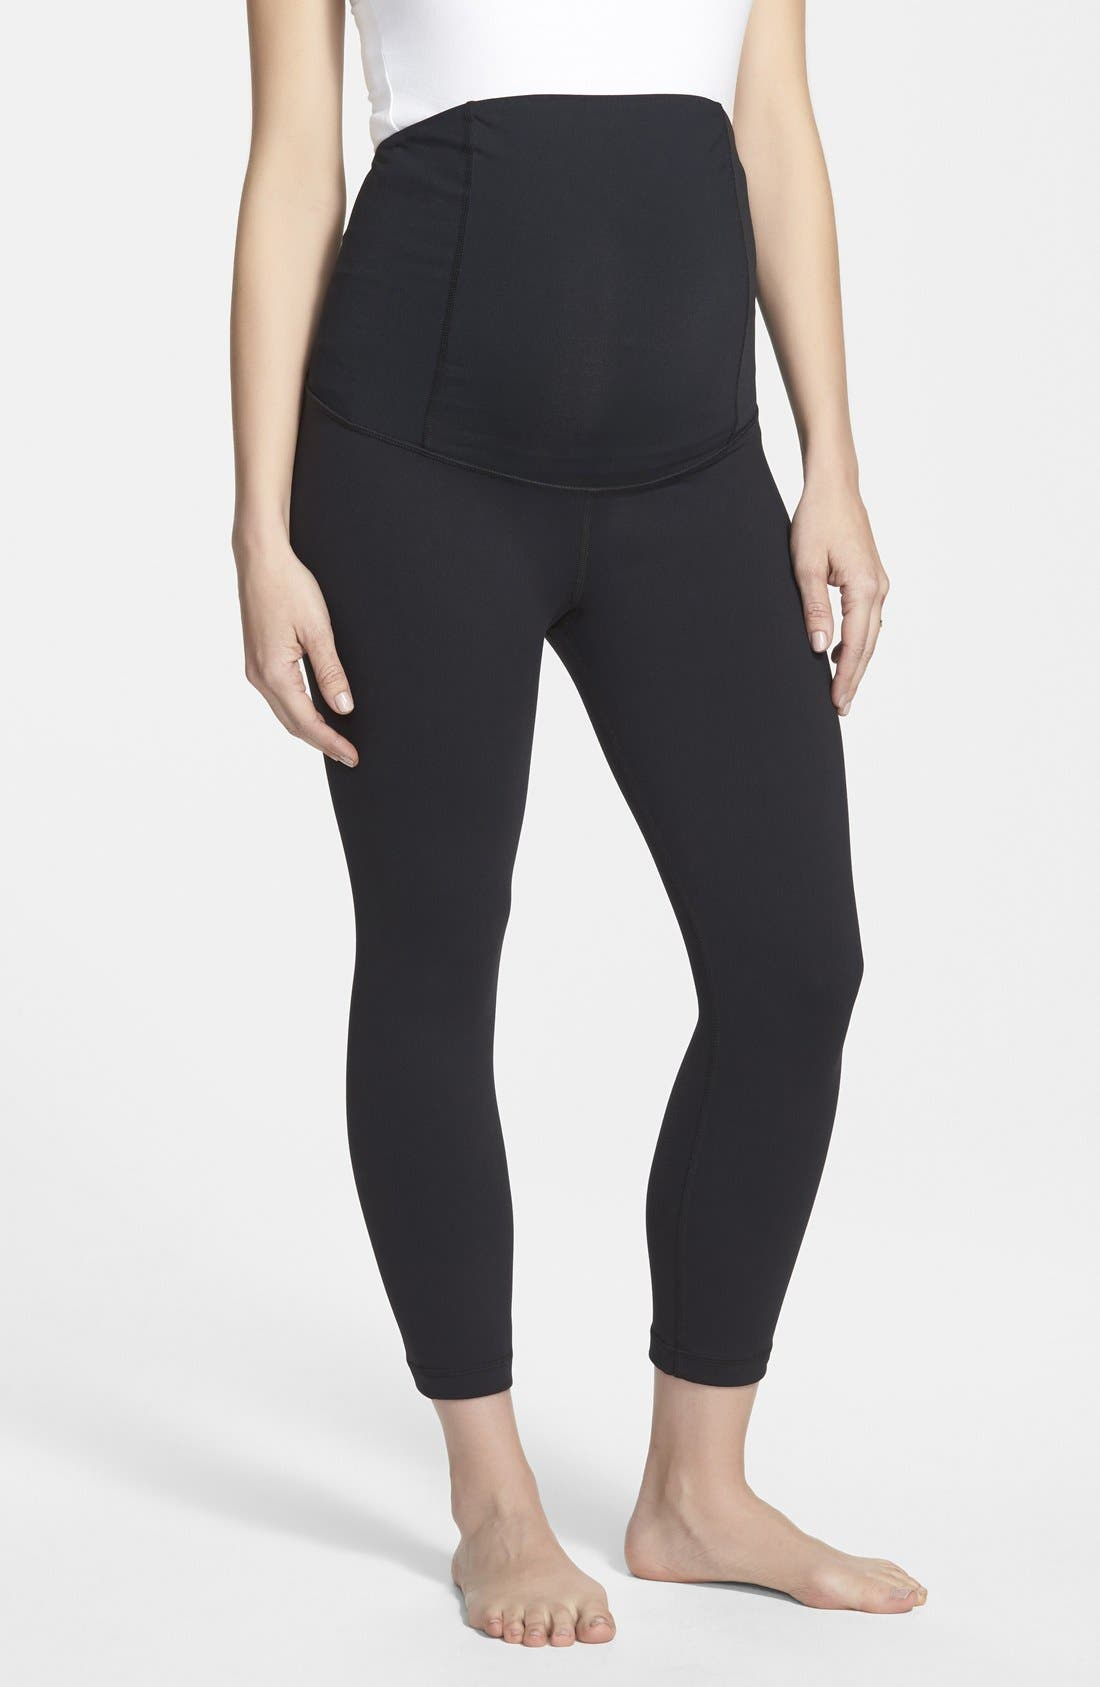 Main Image - Ingrid & Isabel® Active Maternity Capri Pants with Crossover Panel